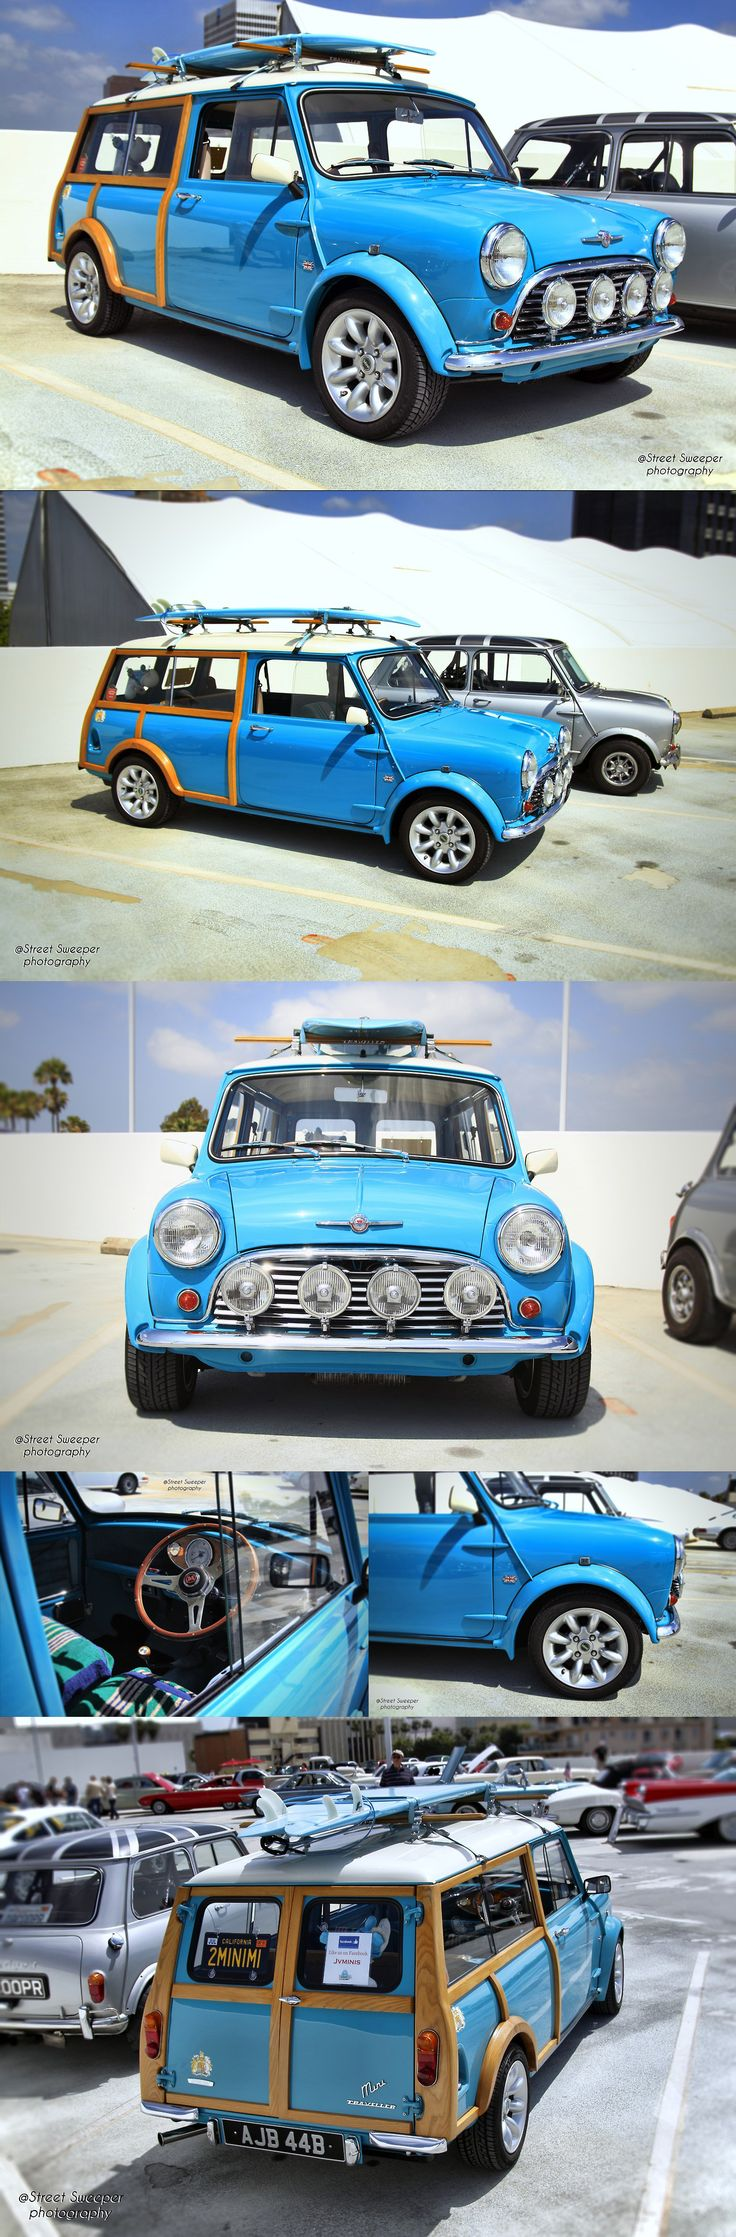 Best 25 Mini clubman ideas on Pinterest  Mini cooper clubman